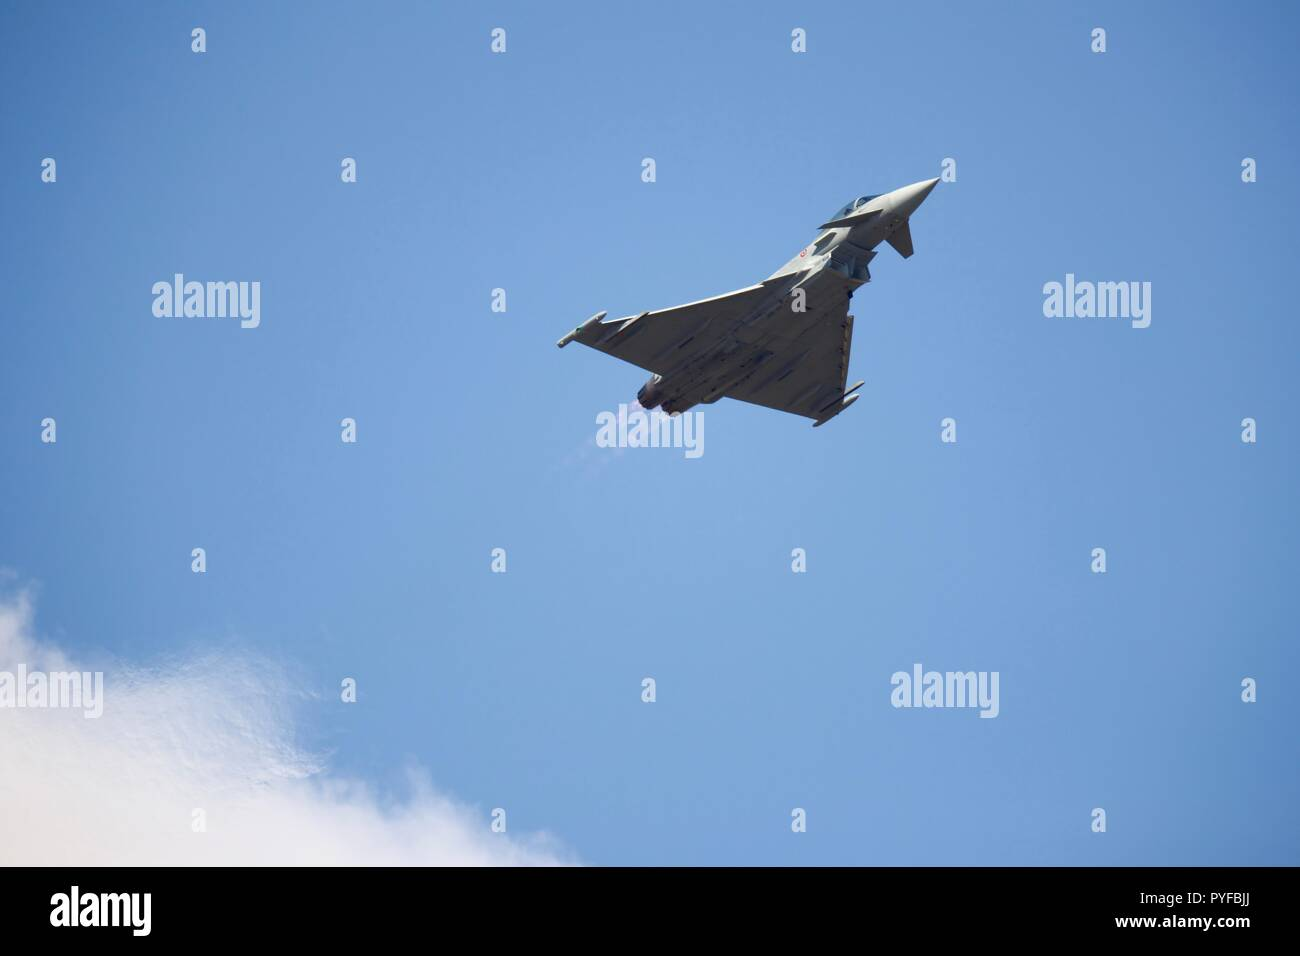 Italian Air Force F-2000A Eurofighter Typhoon at the 2018 Royal International Air Tattoo - Stock Image